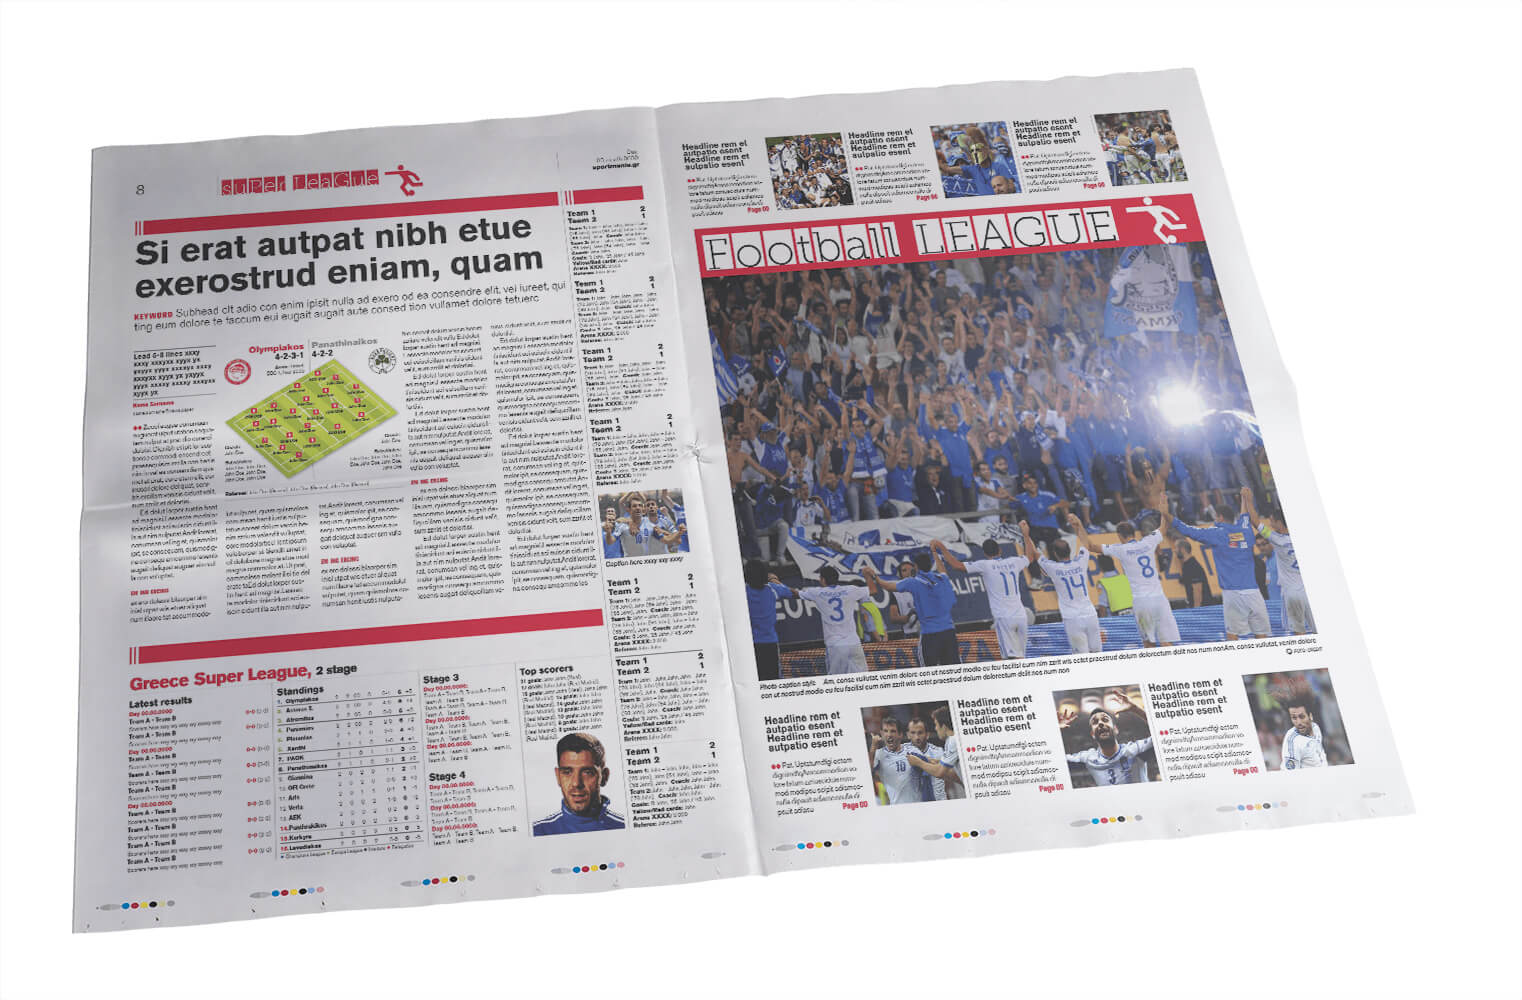 sportmania-newspaper_spread-5